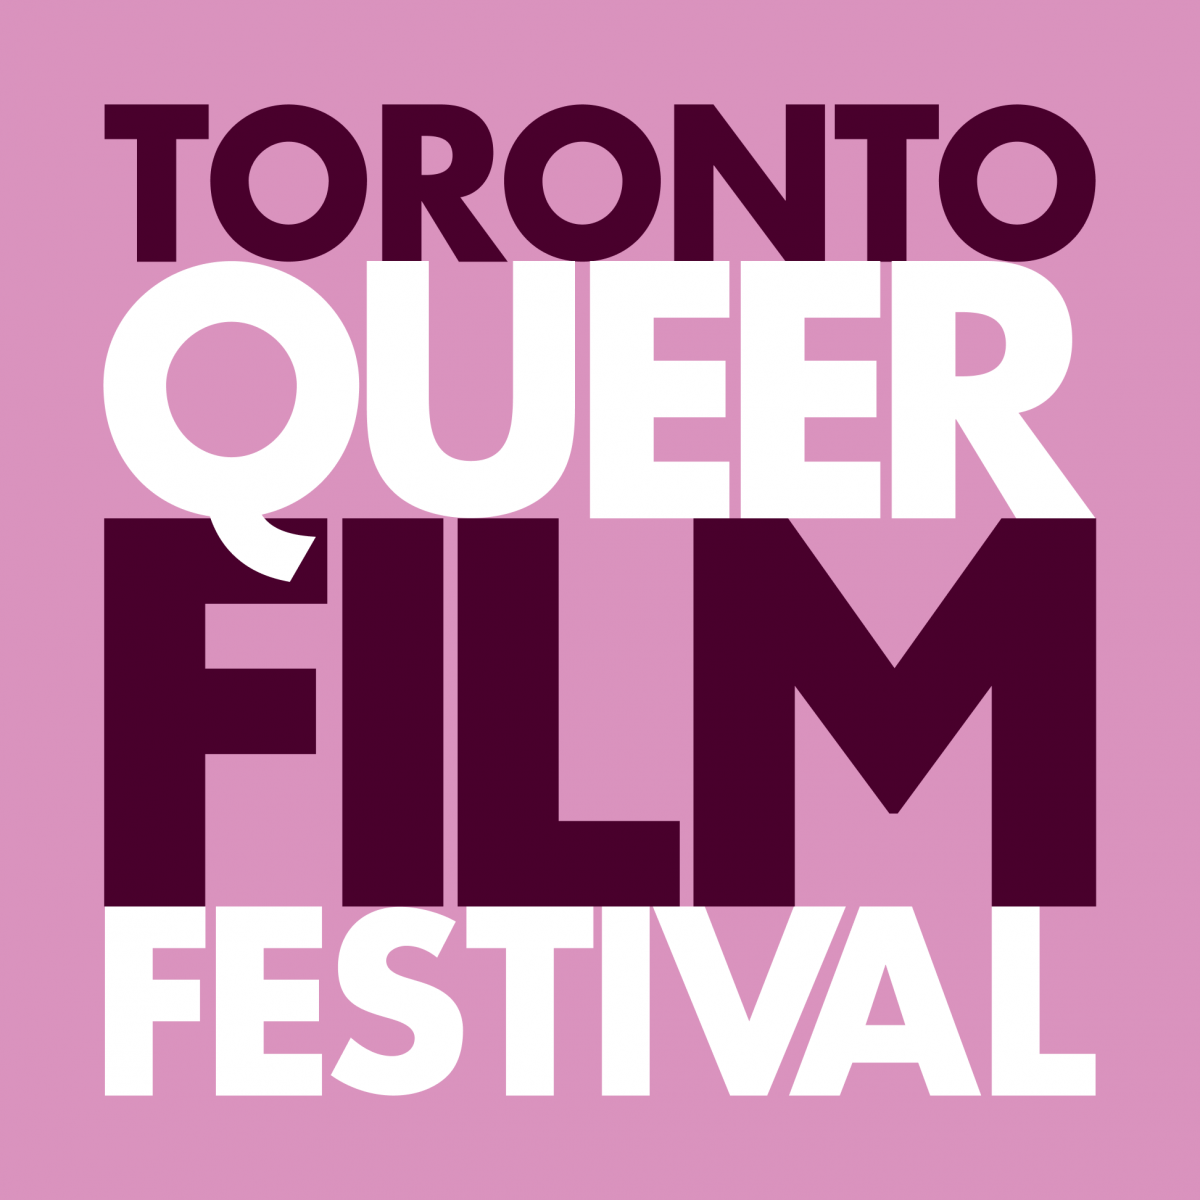 This image is the Toronto Queer Film Festival Logo. The logo is set on a pink background.